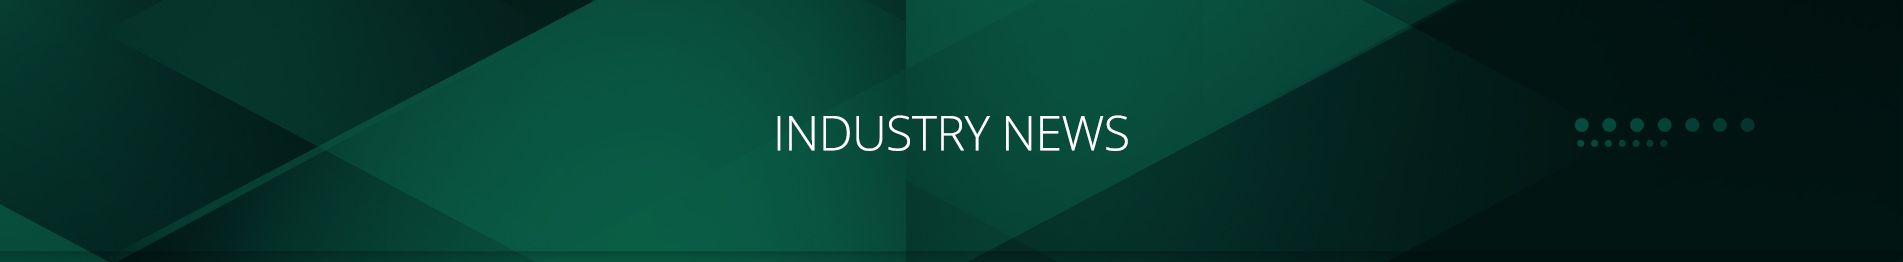 Envent Corporation | Industry News